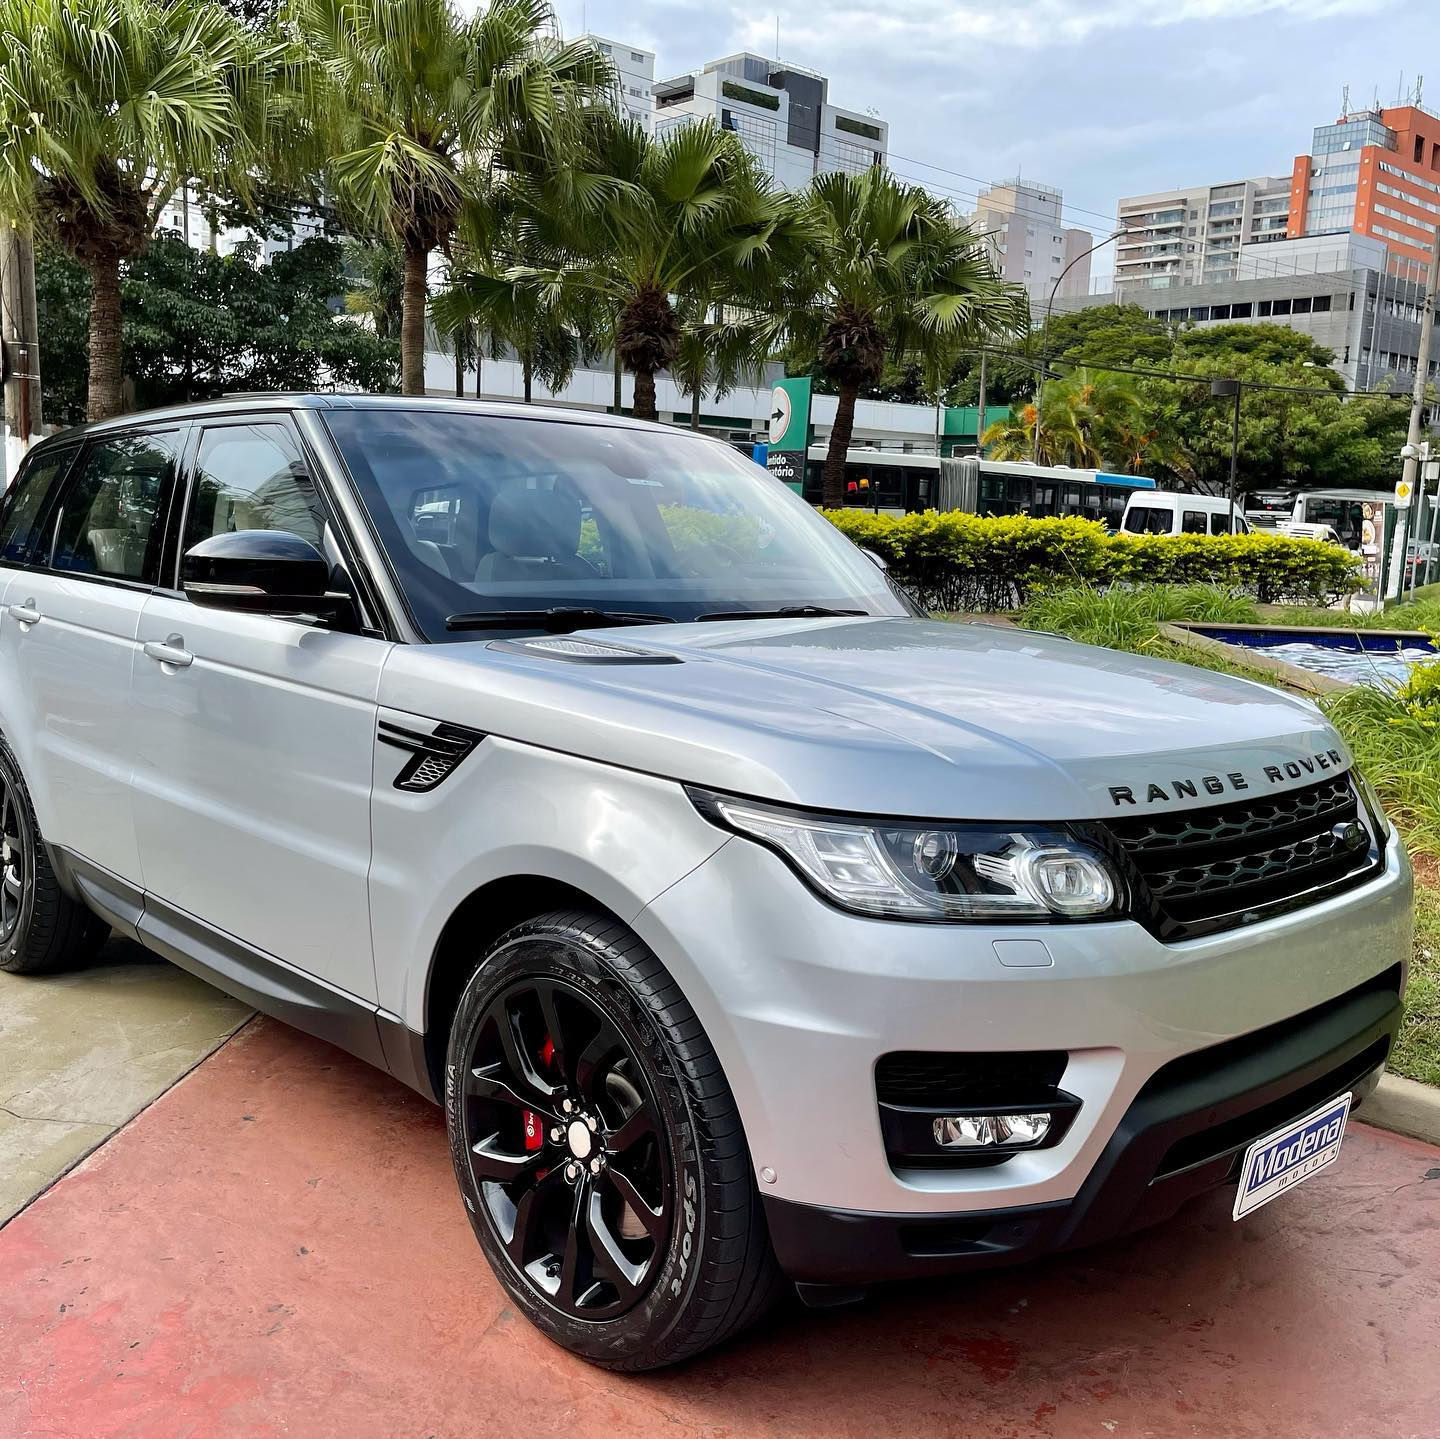 Land Rover Range Rover Sport 5.0 S/C Autobiography Dynamic 4wd 2014 2014